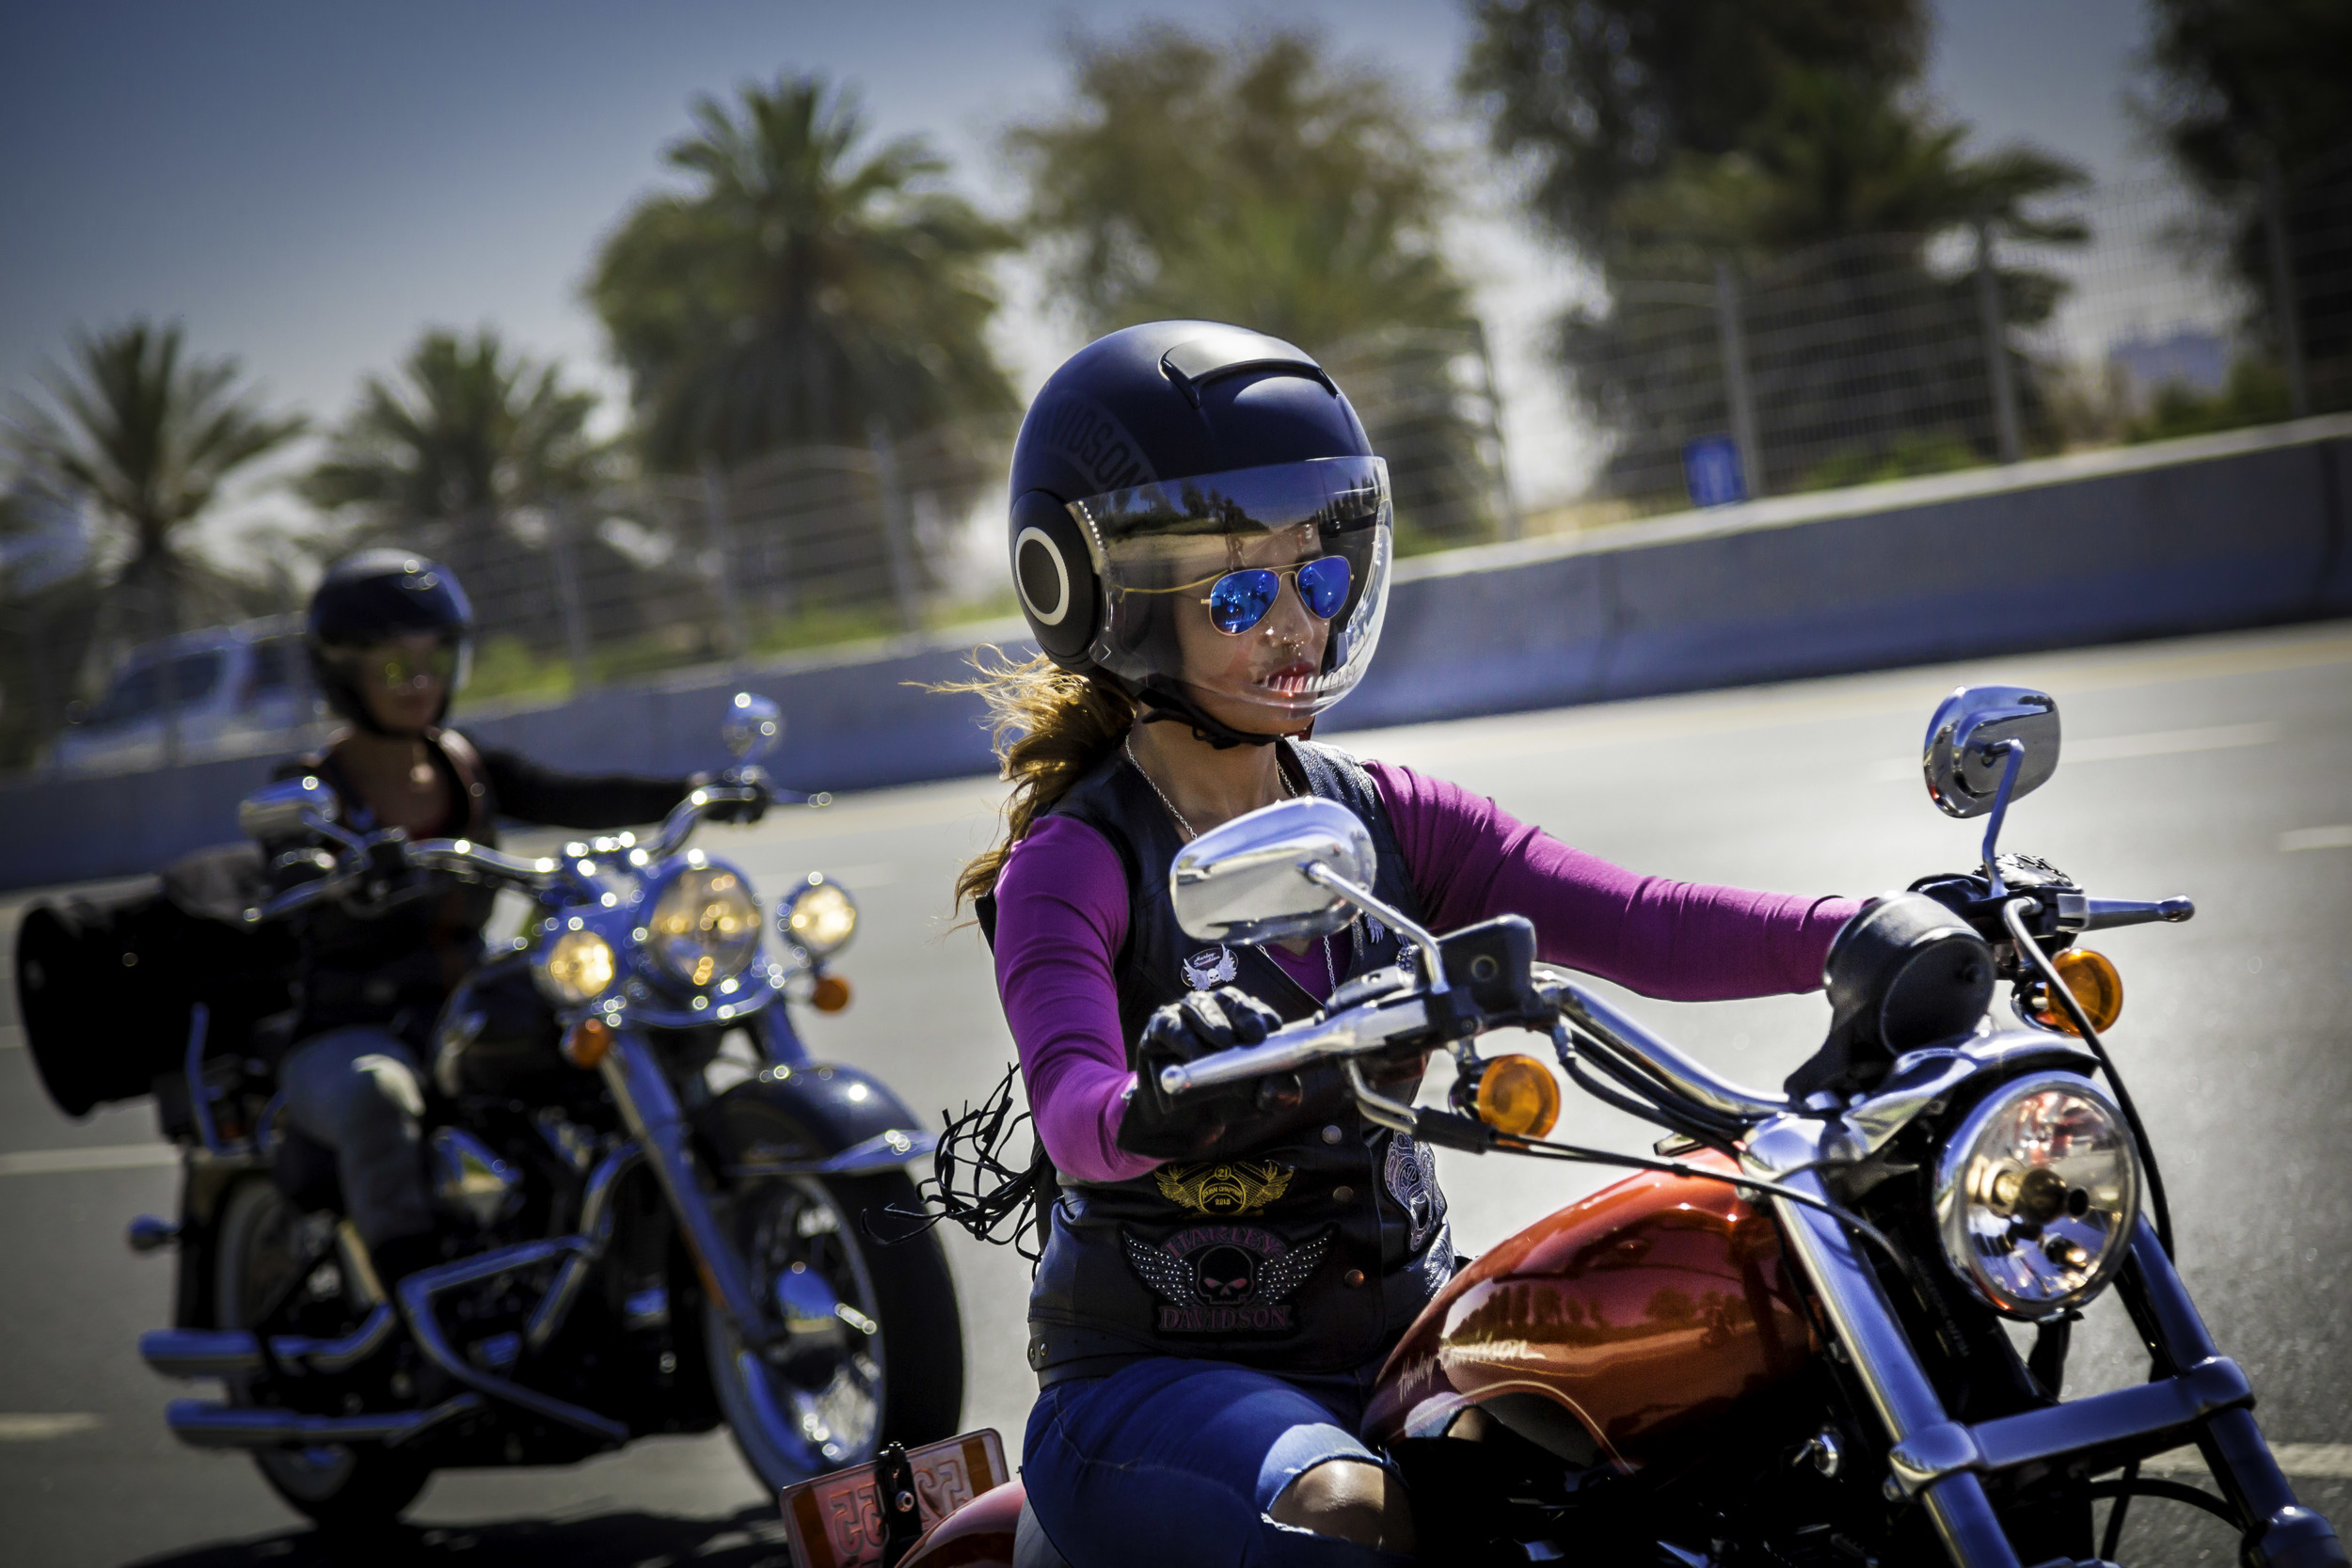 Dubai Ladies of Harley riders riding back to Dubai after marking International Female Ride Day.jpg